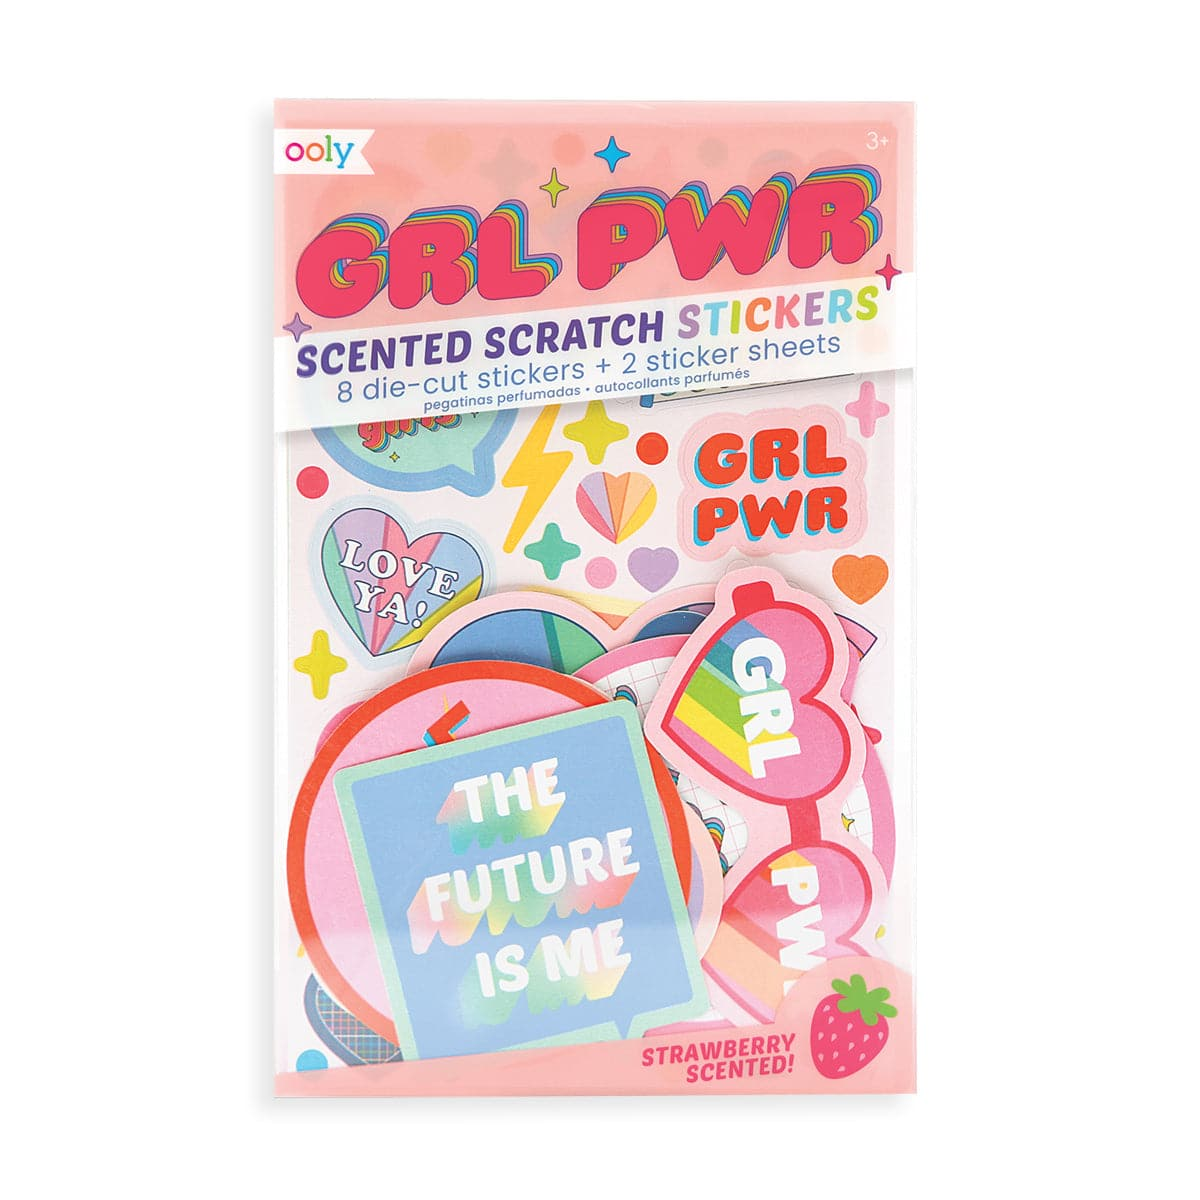 Grl Pwr Scented Stickers